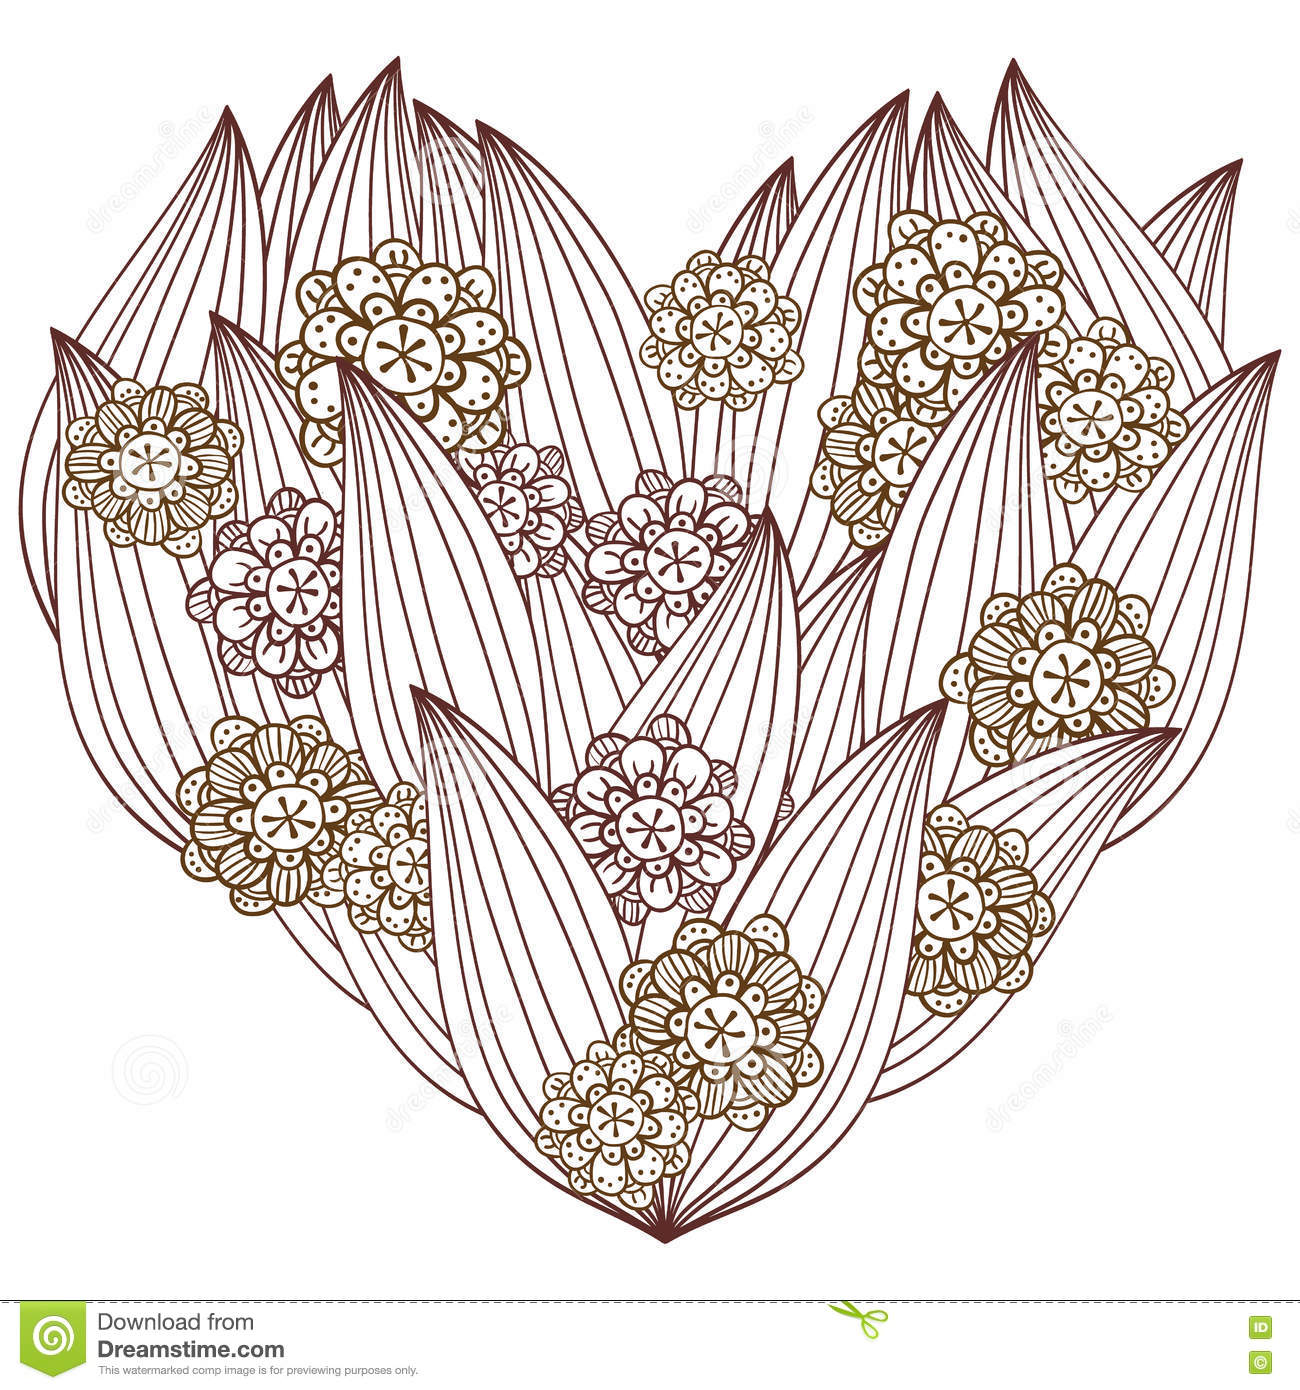 Coloring pages for adults hearts - Heart Adult Coloring Page Whimsical Floral Design